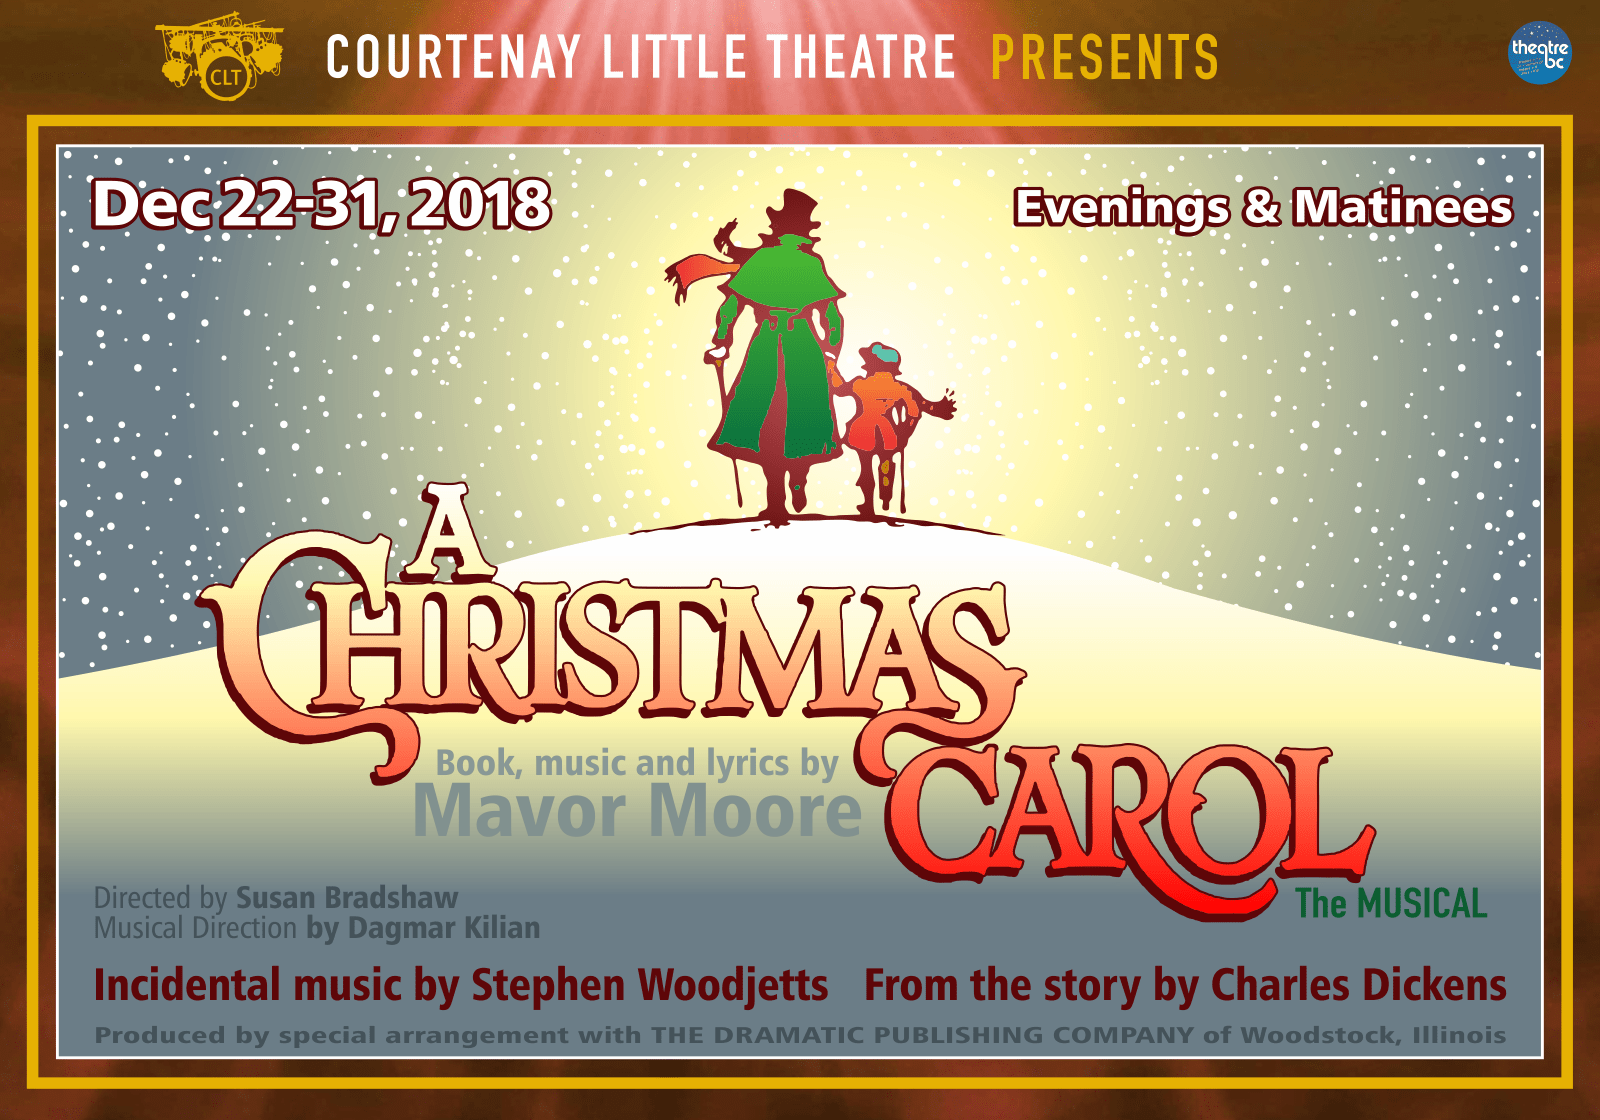 """Courtenay Little Theatre presents """"A Christmas Carol: the Musical"""" Dec. 22nd - 31st"""